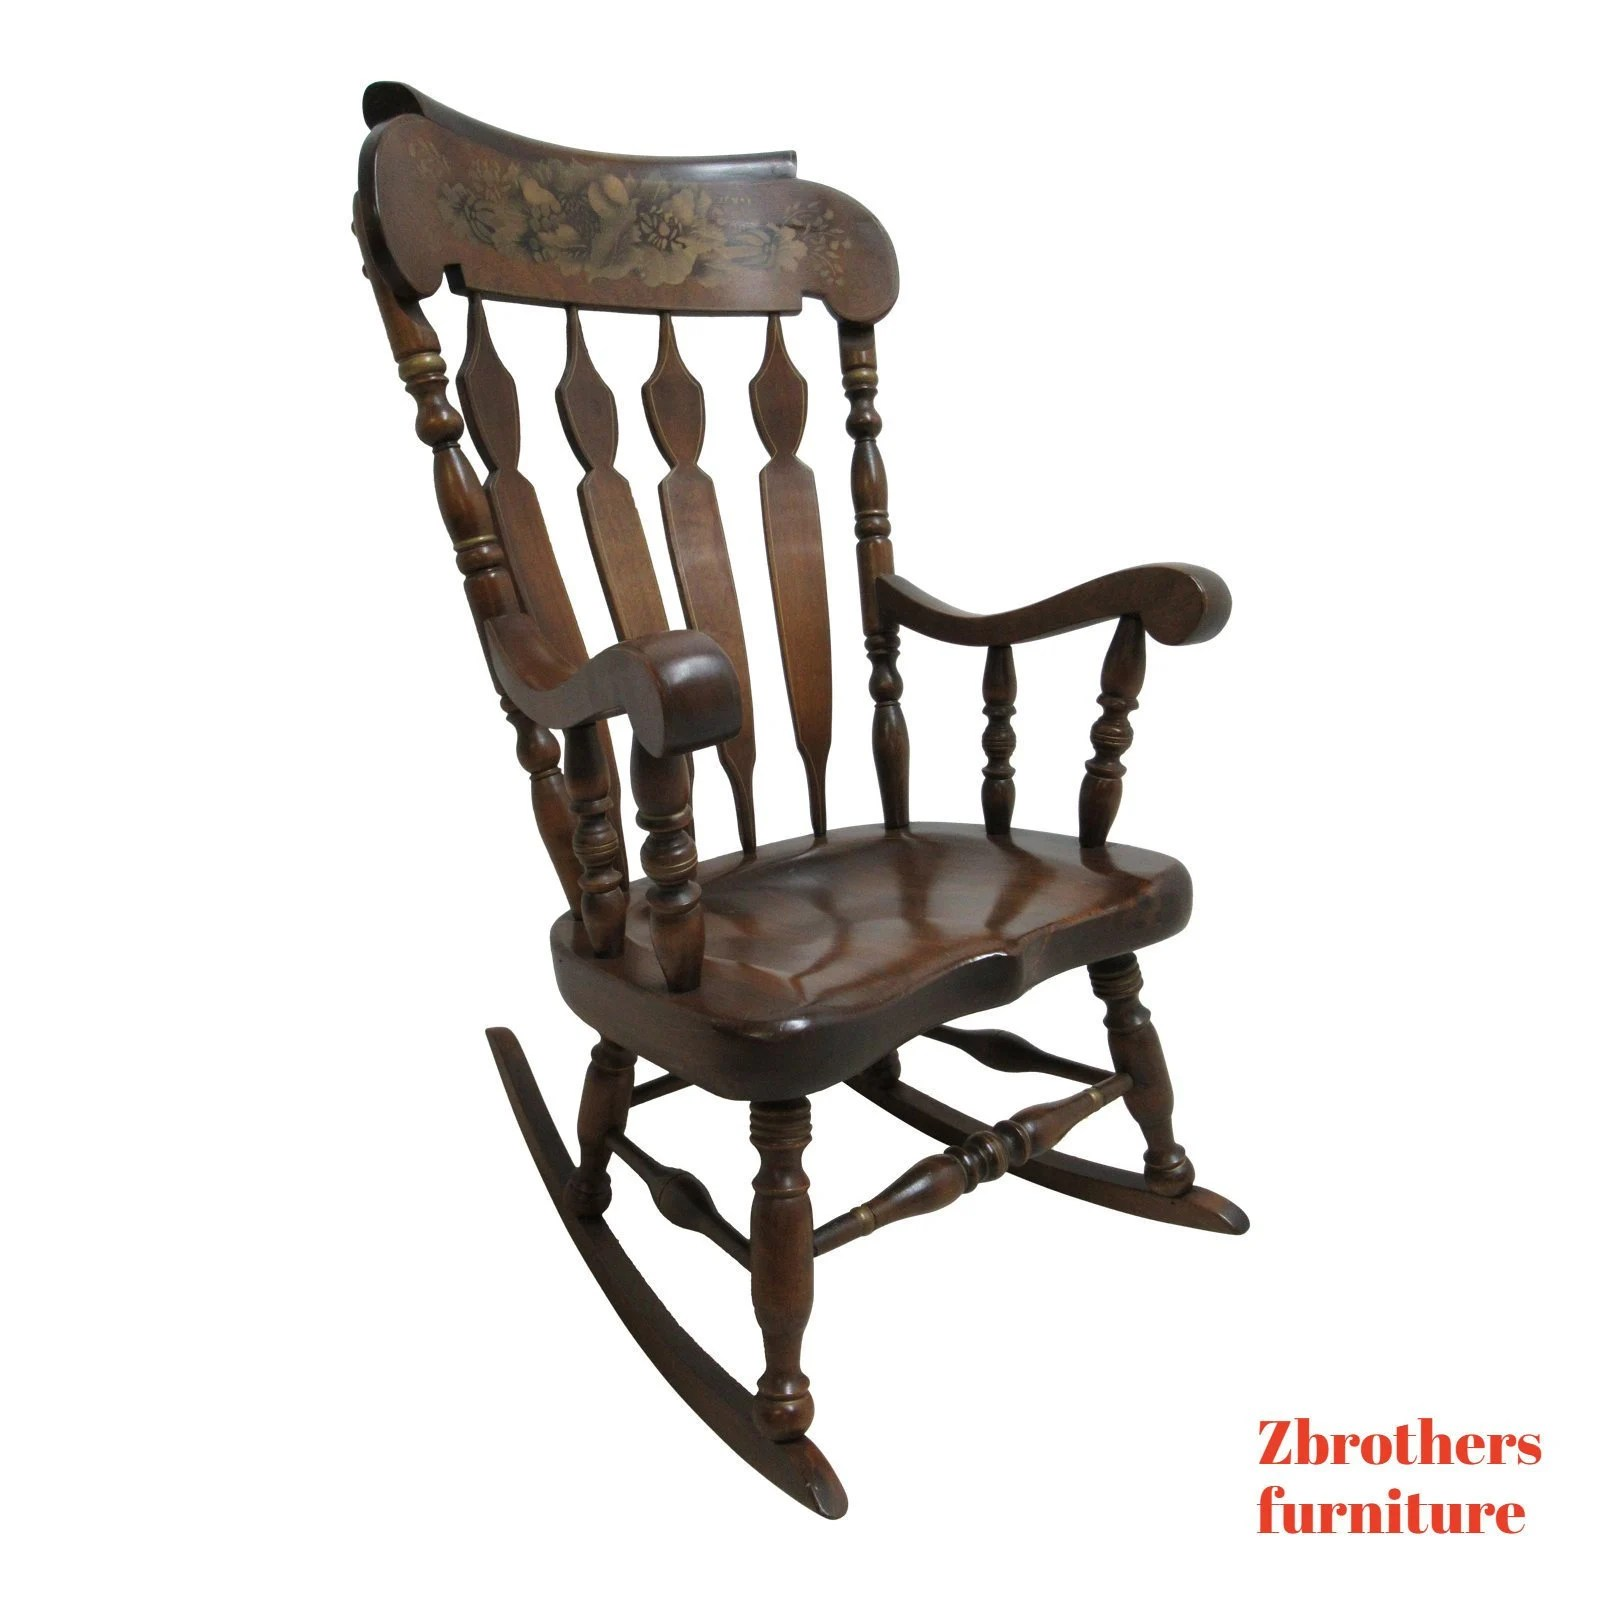 rocking chair height that turns into a bed shark tank vintage rocker lz kamman co pine hitchock paint etsy image 0